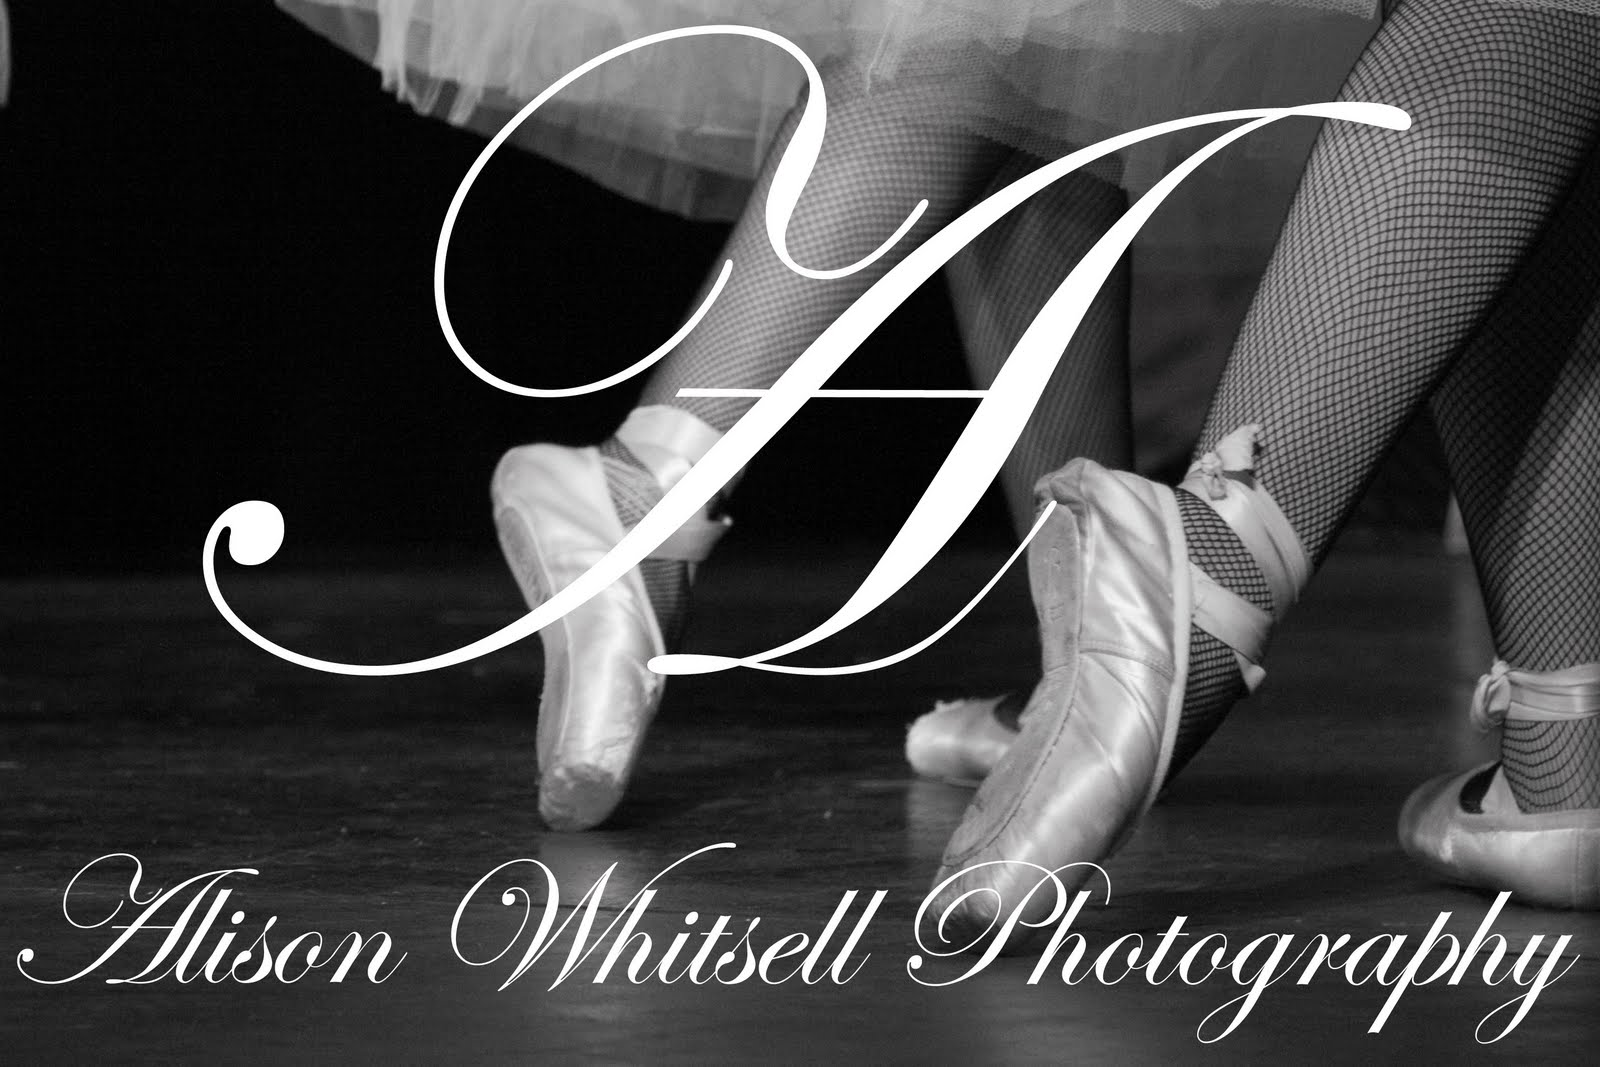 Alison Whitsell Photography